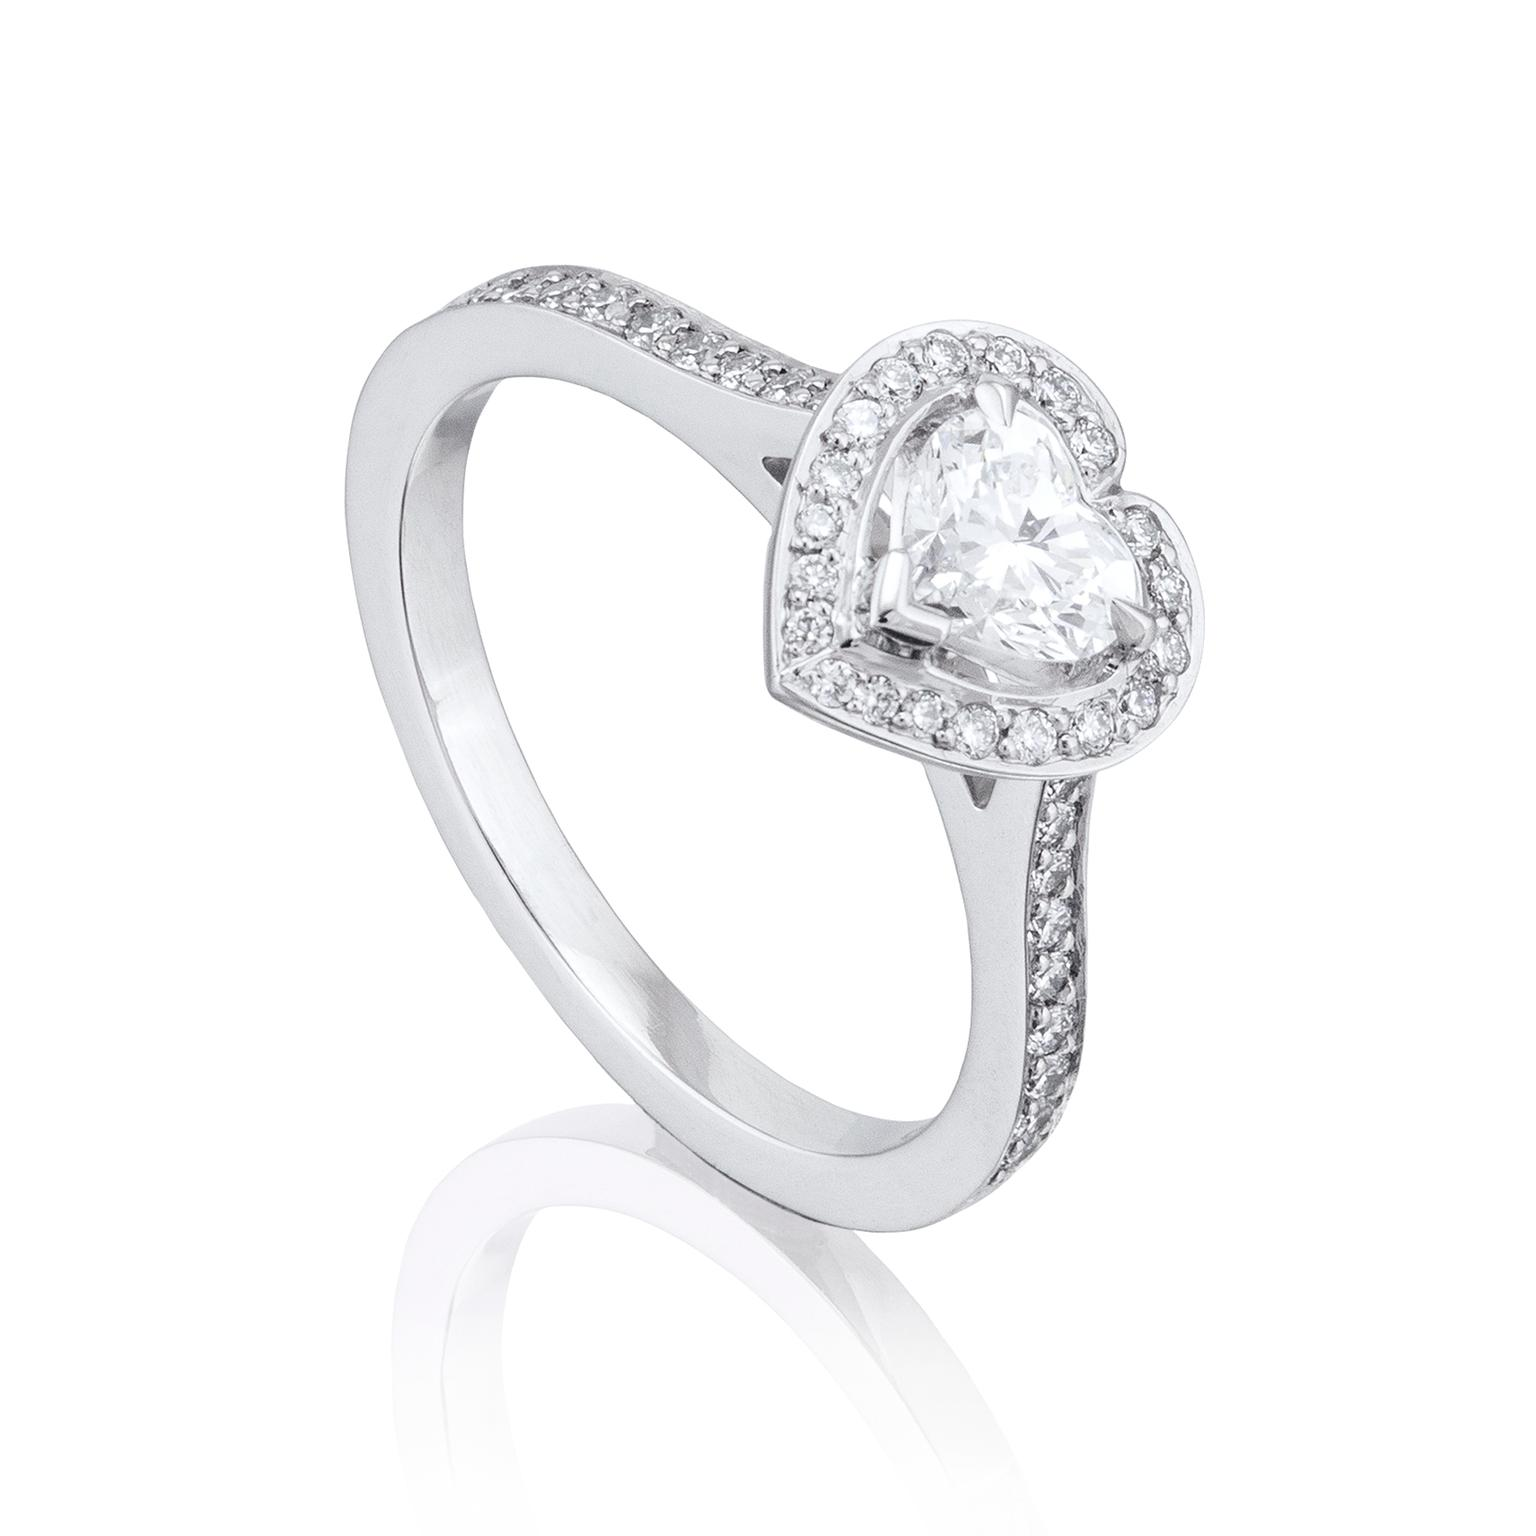 stones heart flawless a ring high featuring ct collections diamond jewellery and shape side pear graff d white with